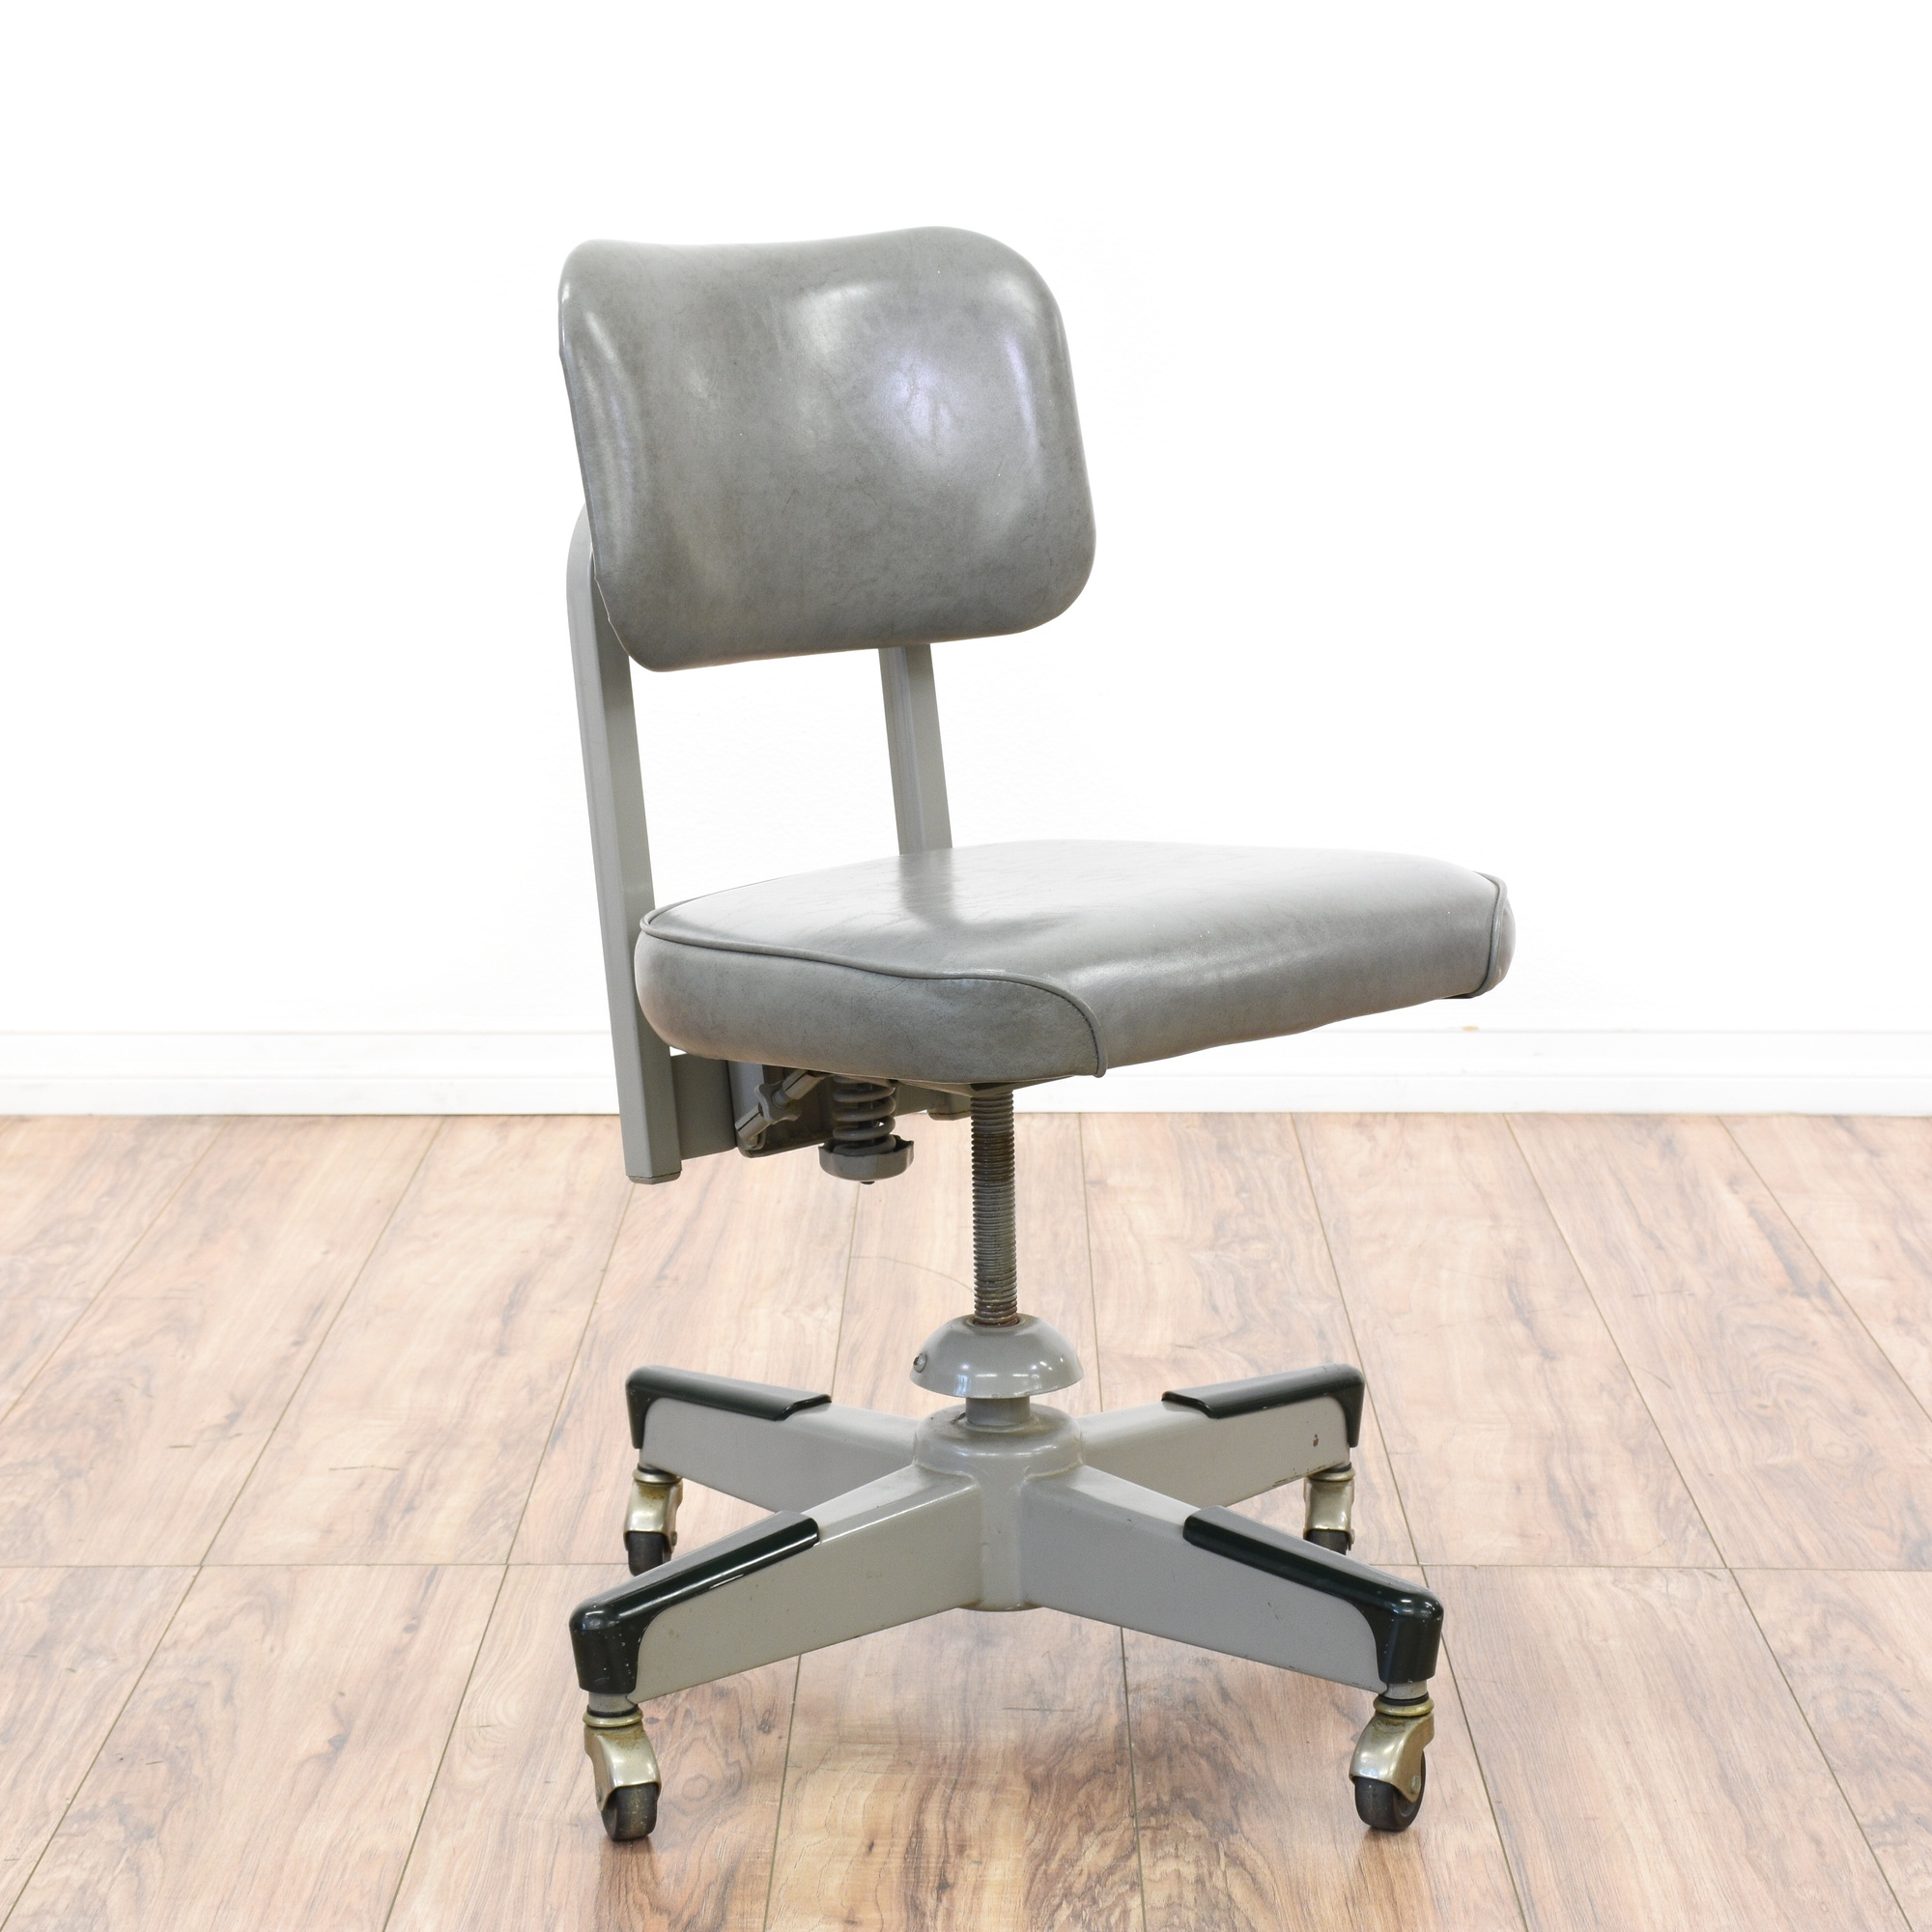 Retro Industrial Gray Vinyl Amp Metal Office Chair